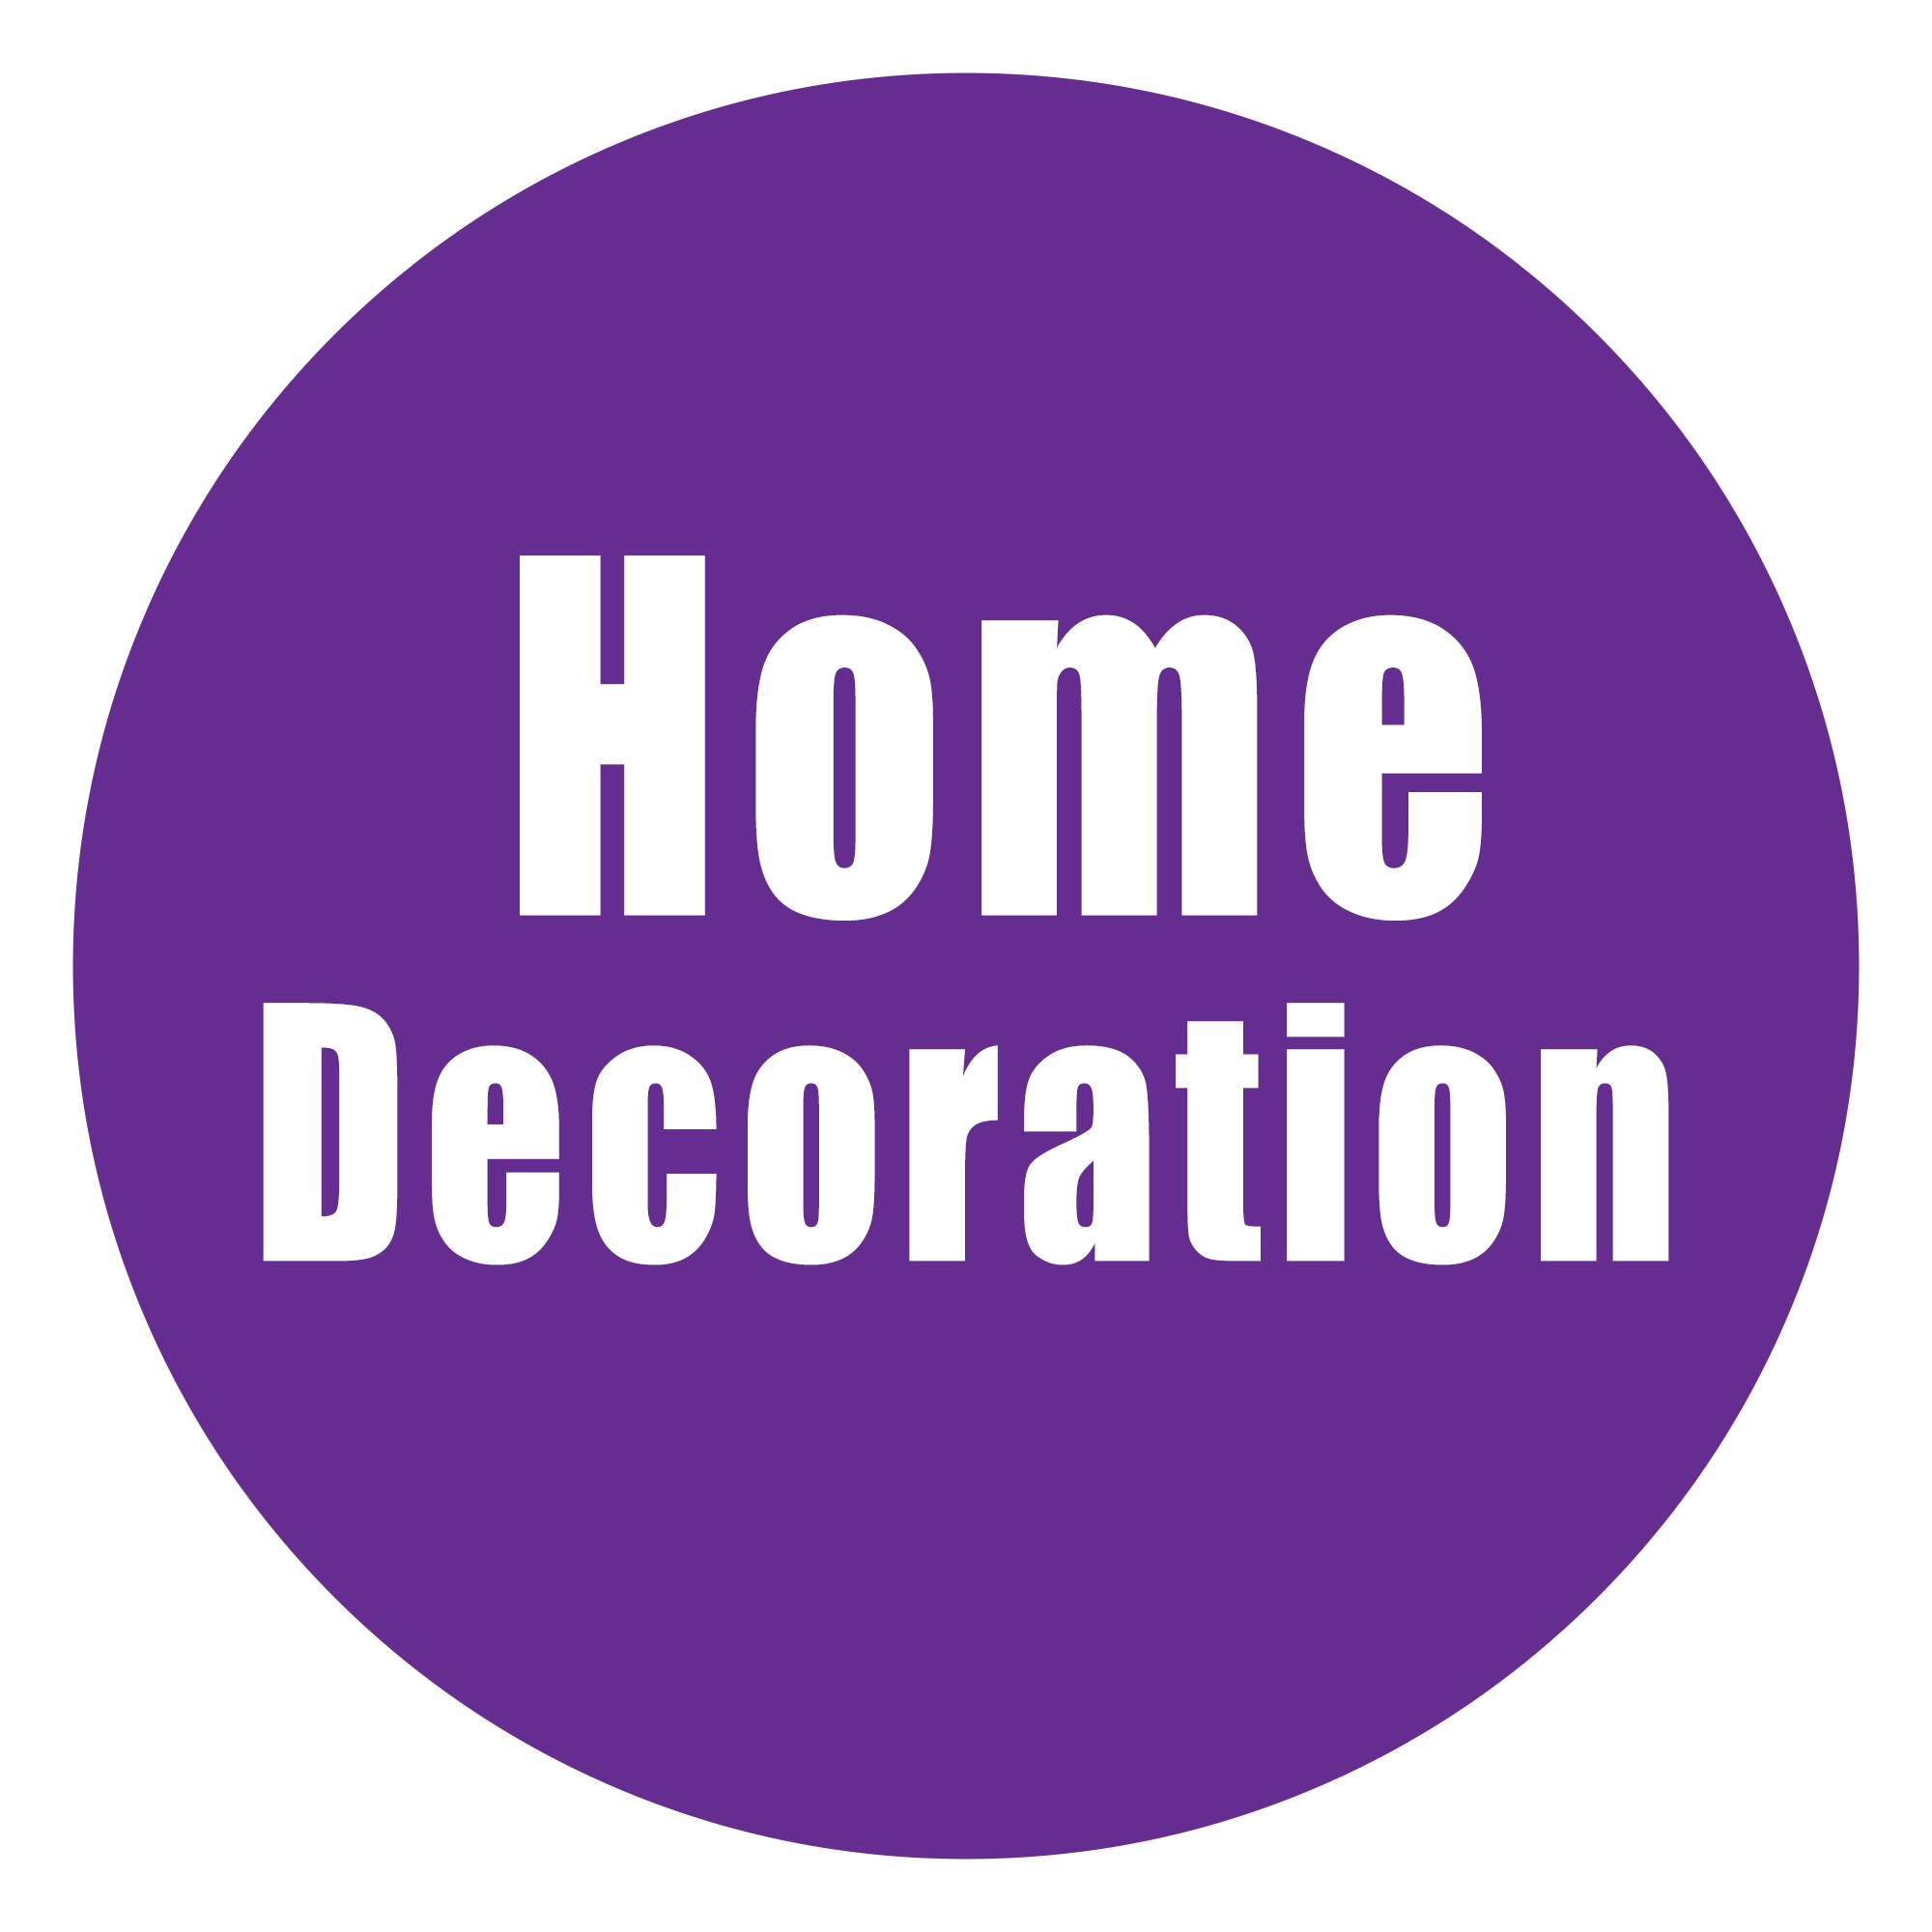 Home Decoration Vector Image PNG